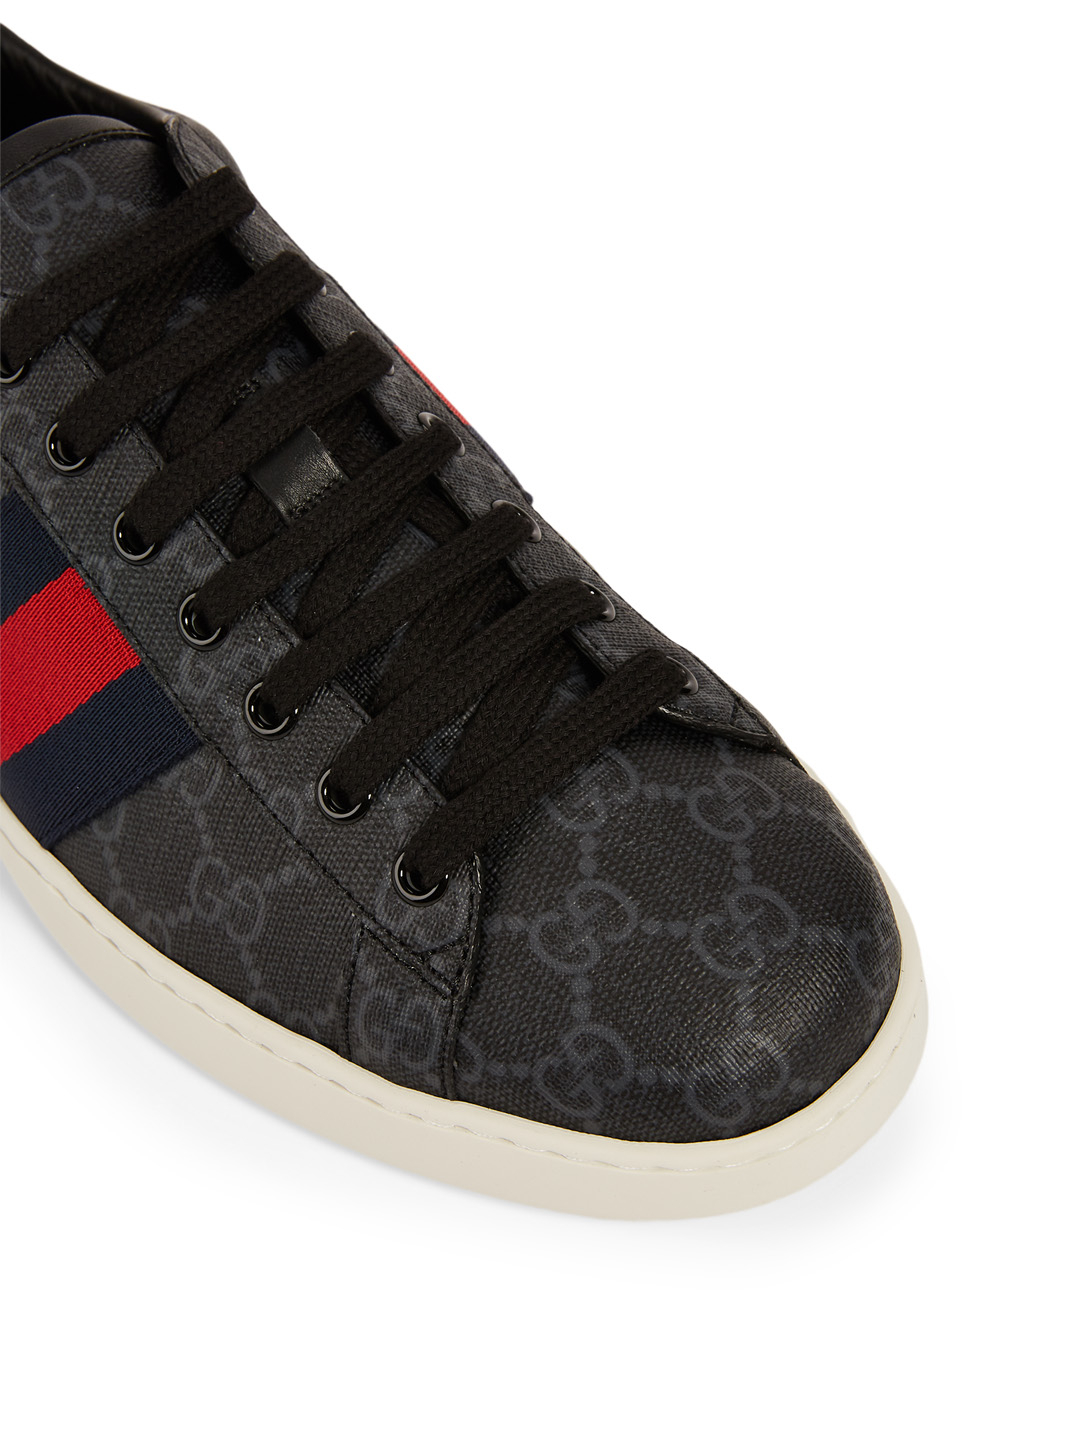 GUCCI Ace GG Supreme Sneakers Men's Black